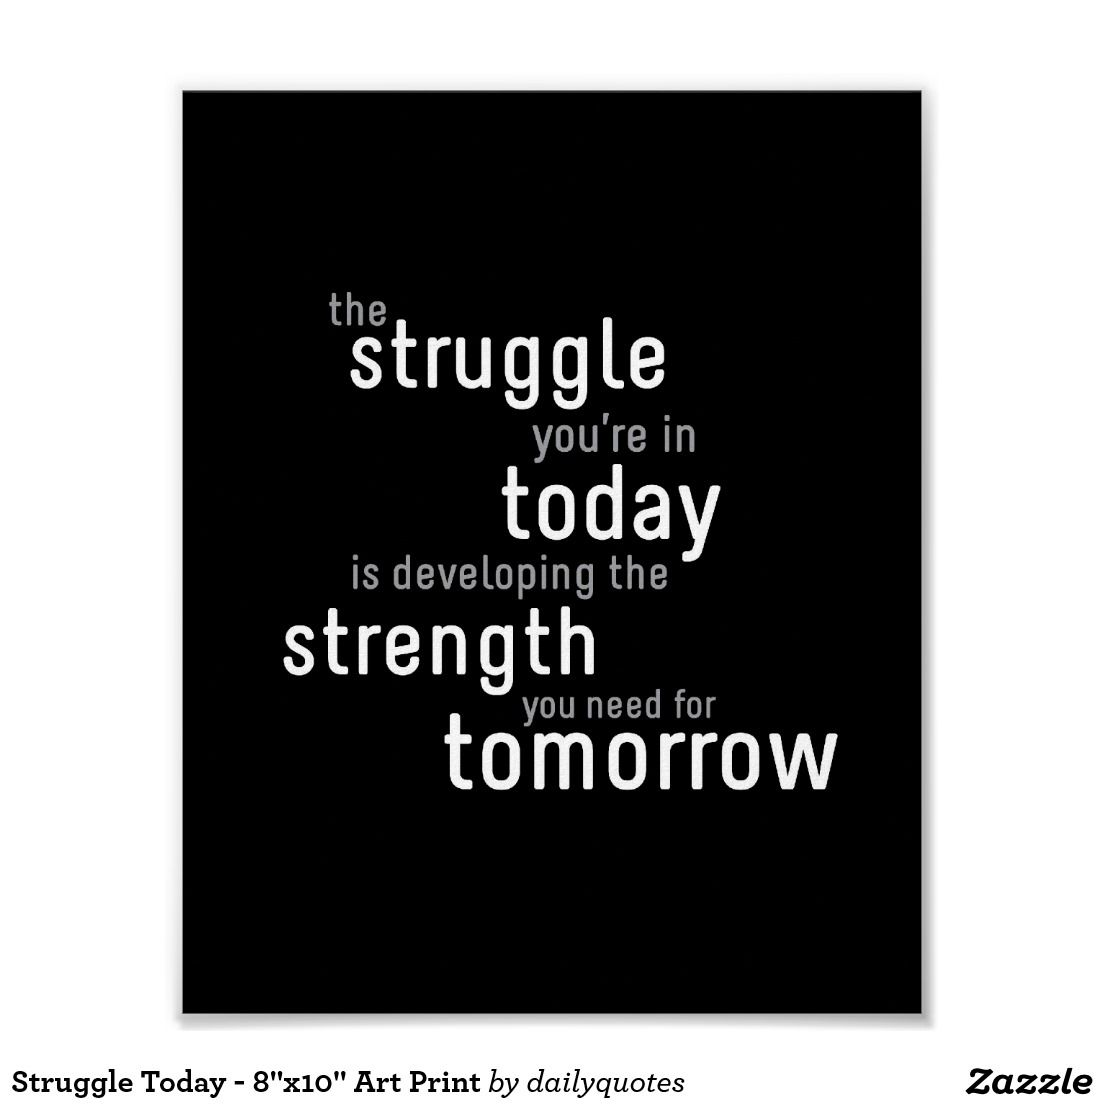 "Struggle Today - 8""x10"" Art Print"